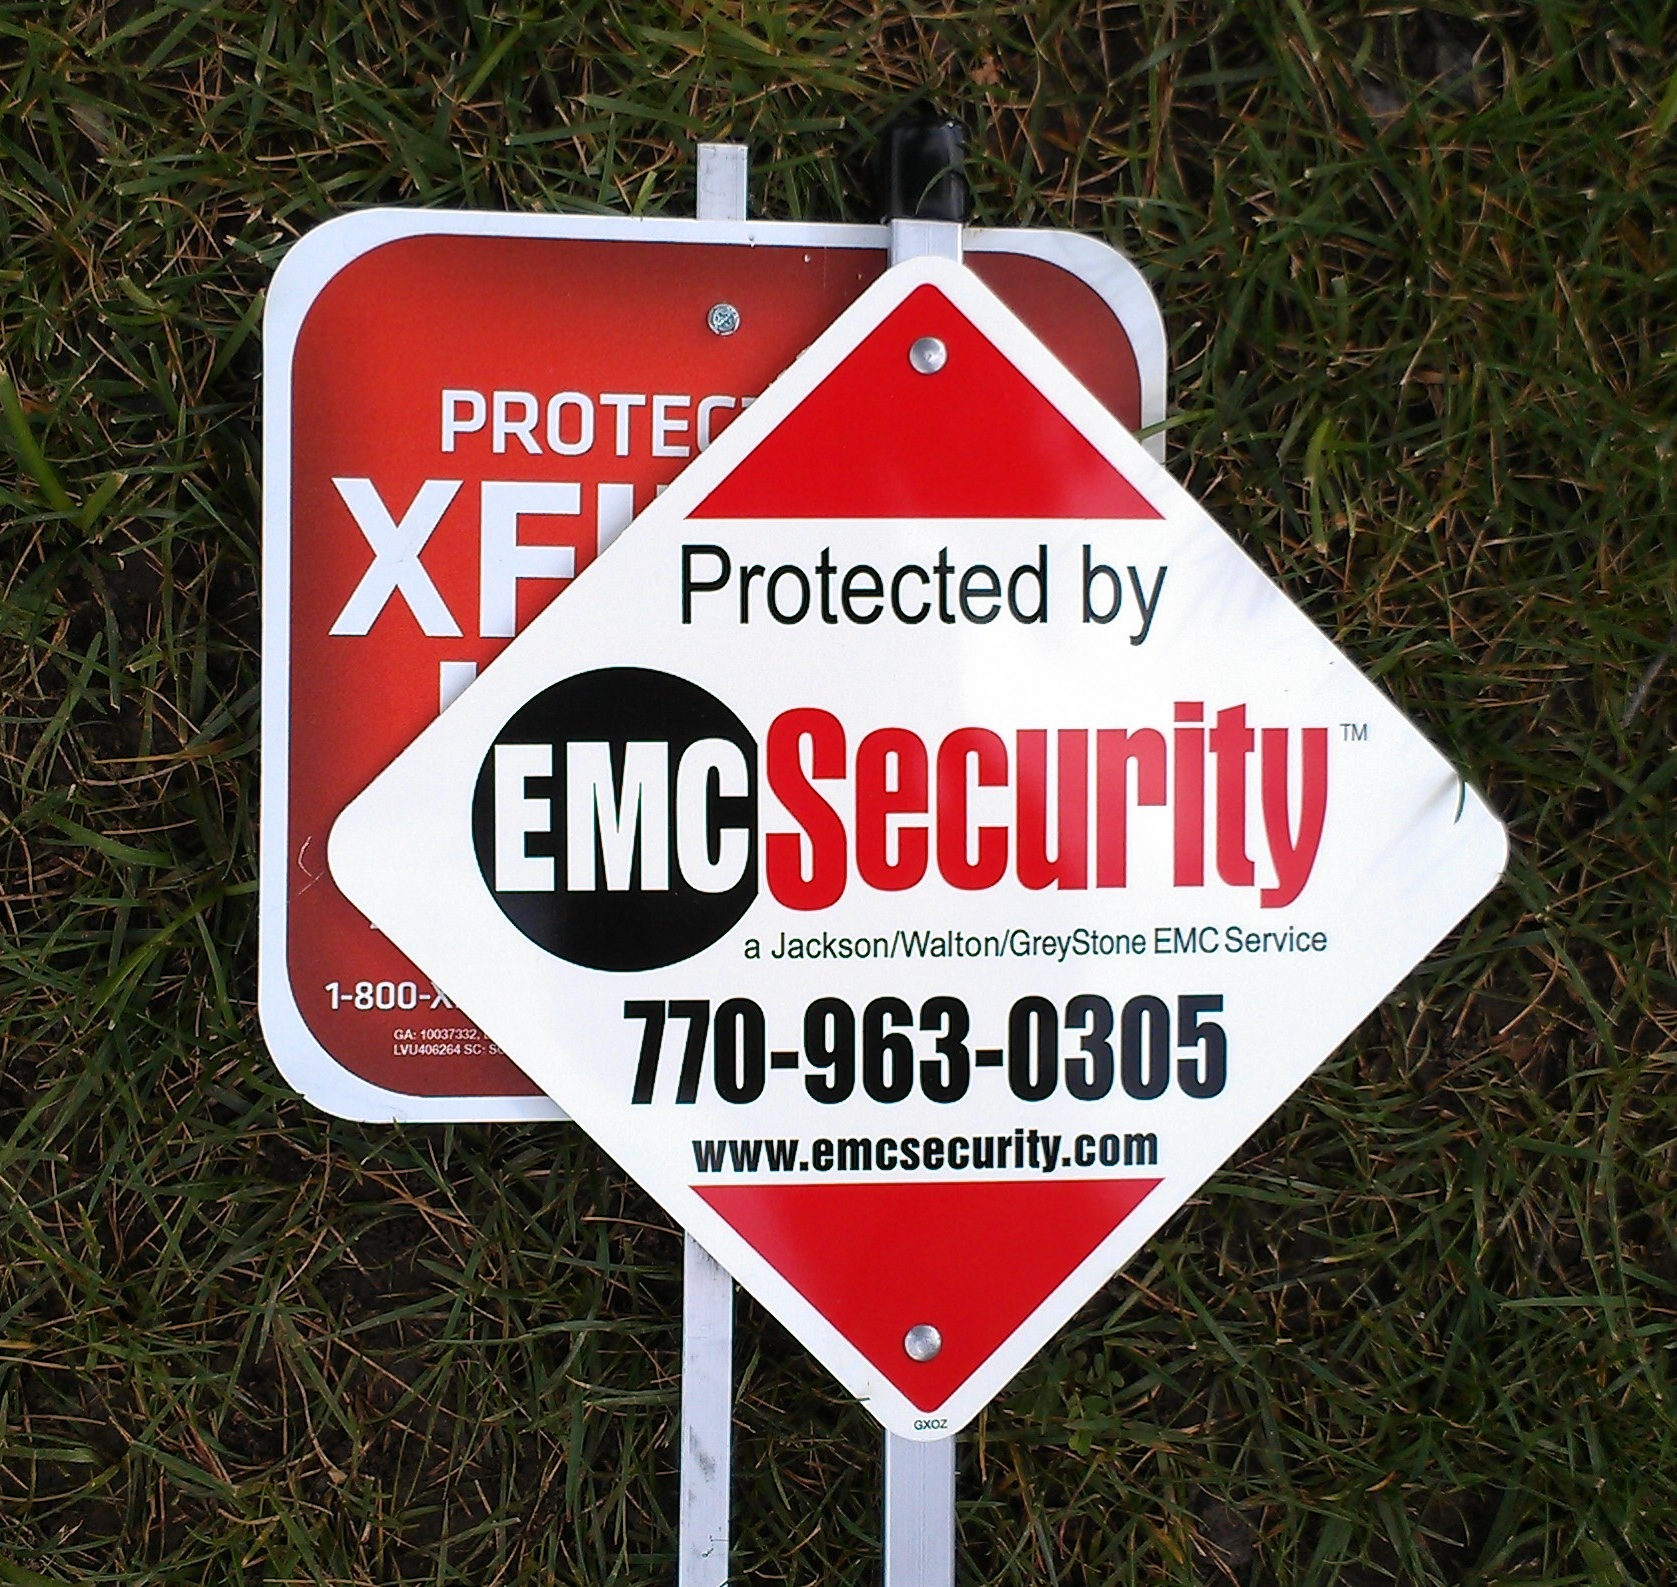 Customer Removes Security System Installed By Cable Company Then Calls Emc